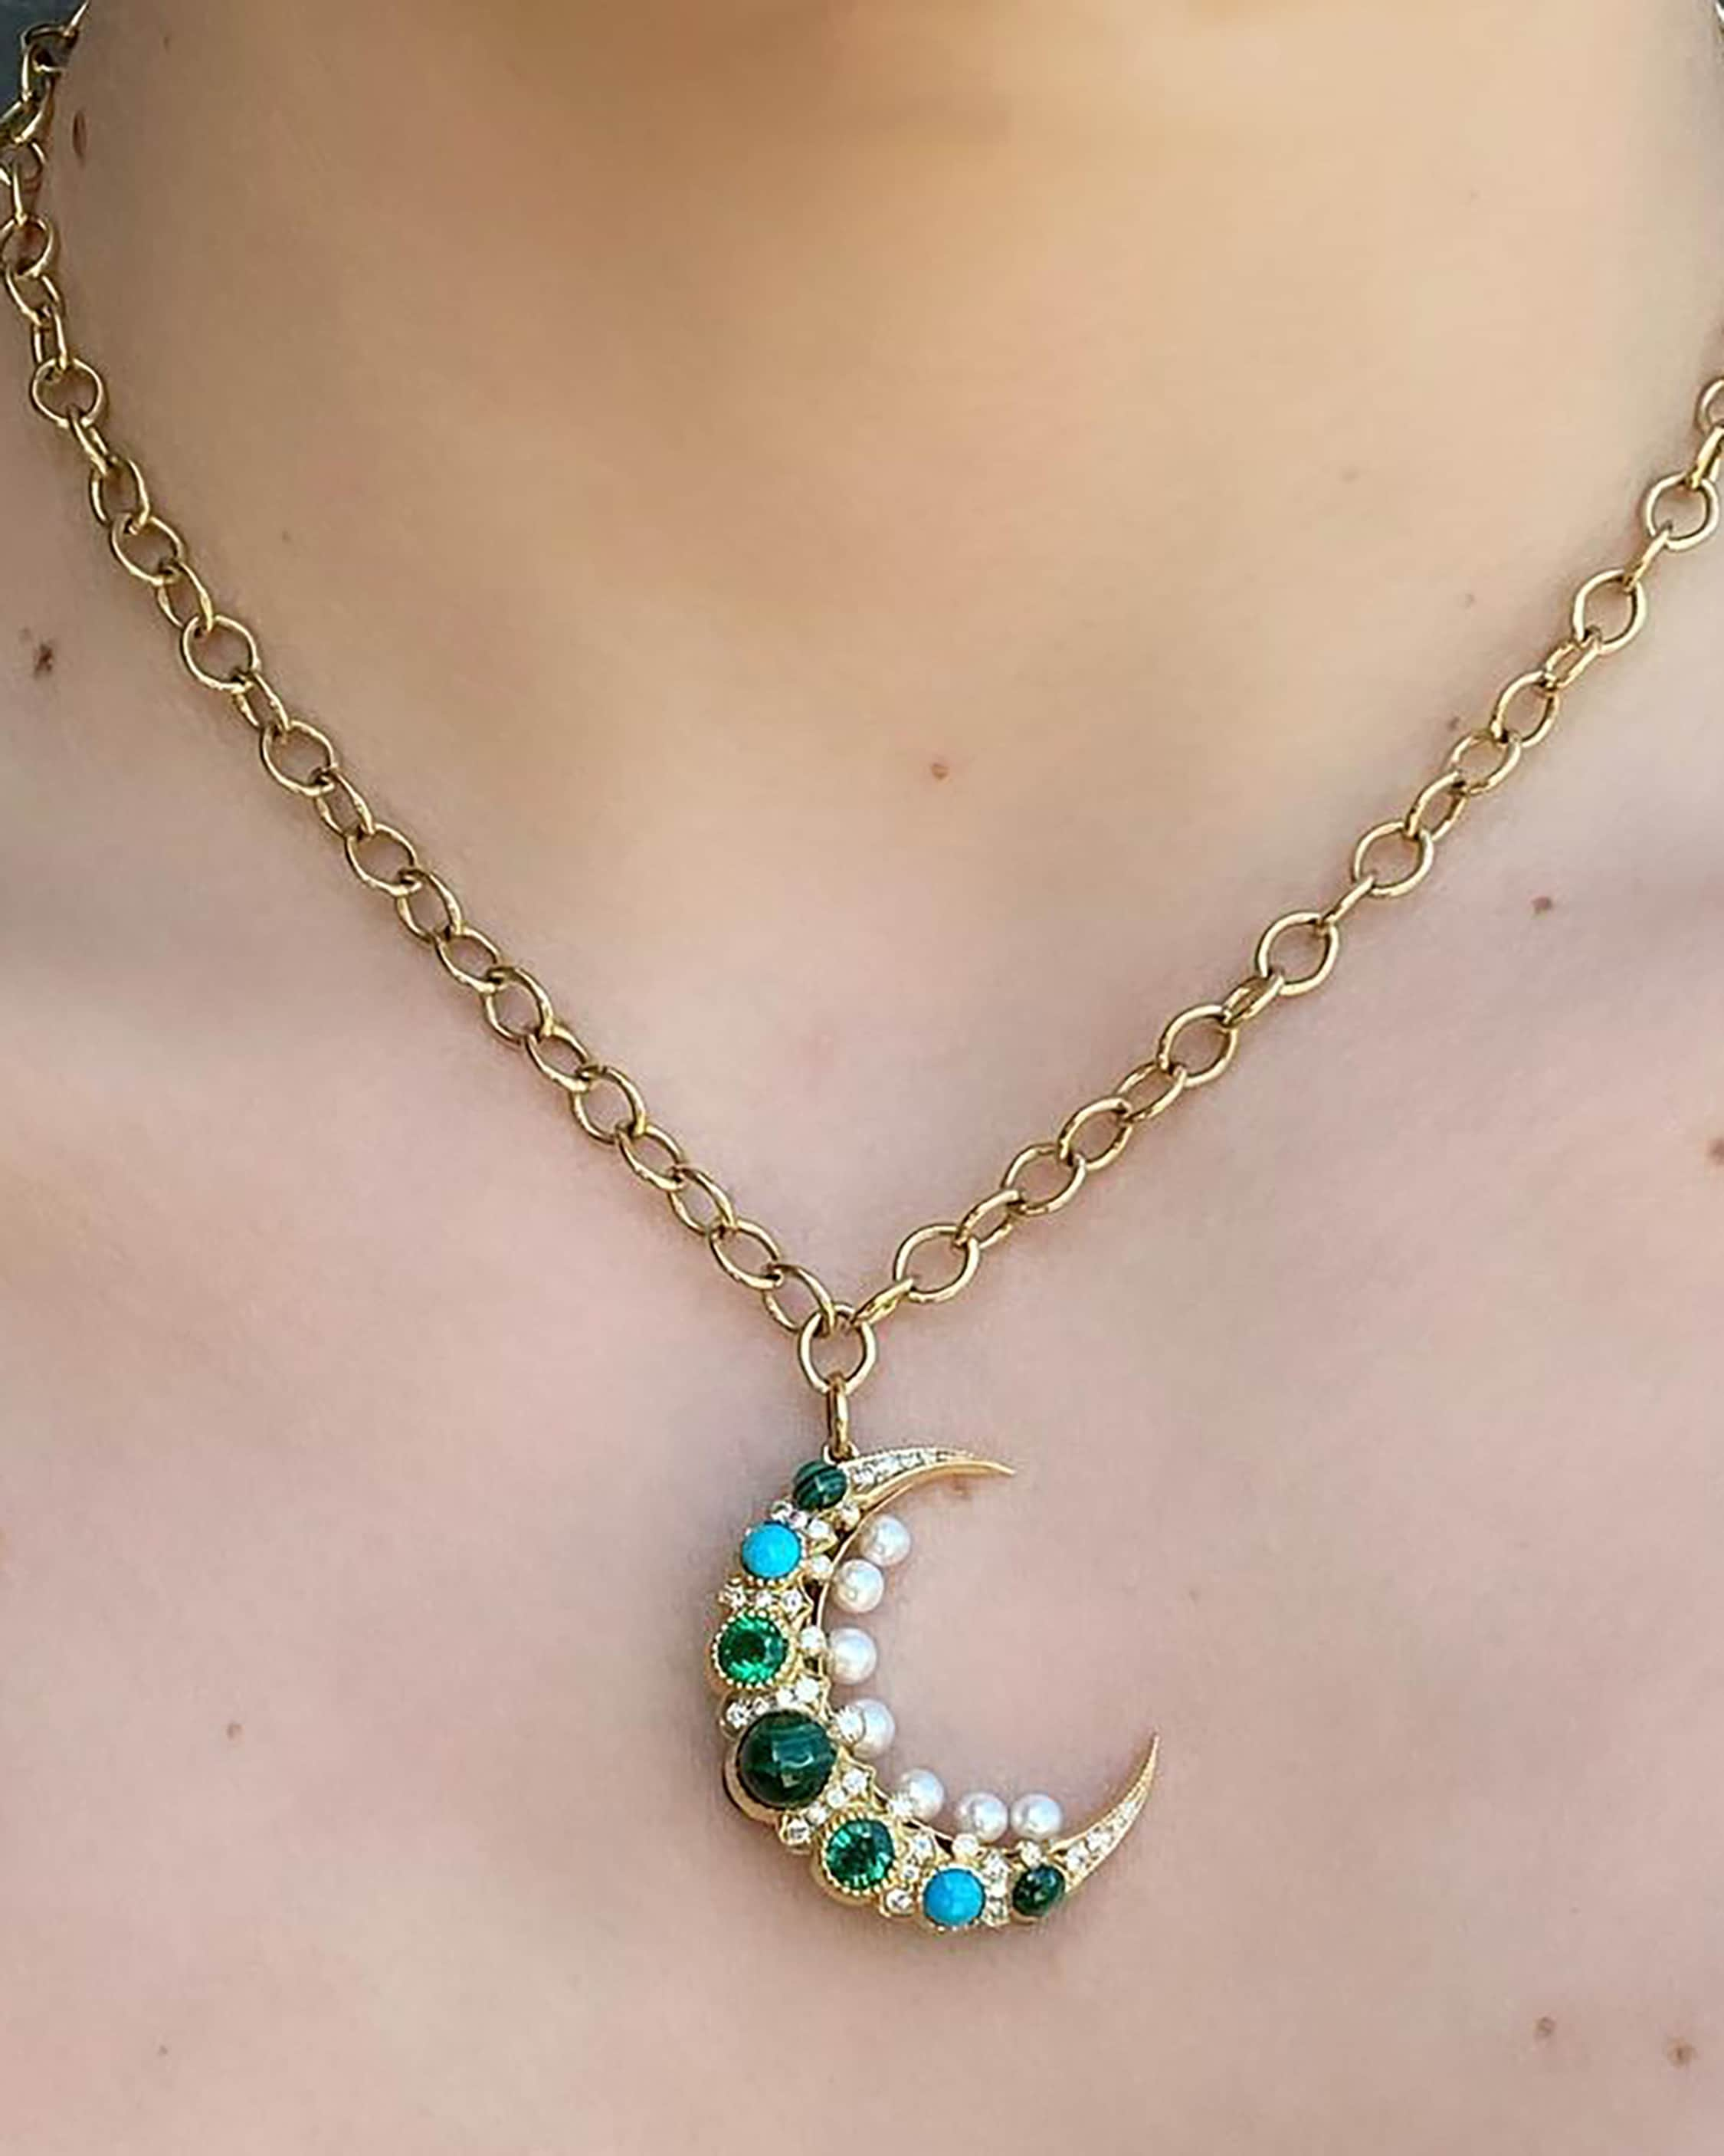 Colette Jewelry Cosmo Mooncage Necklace 2